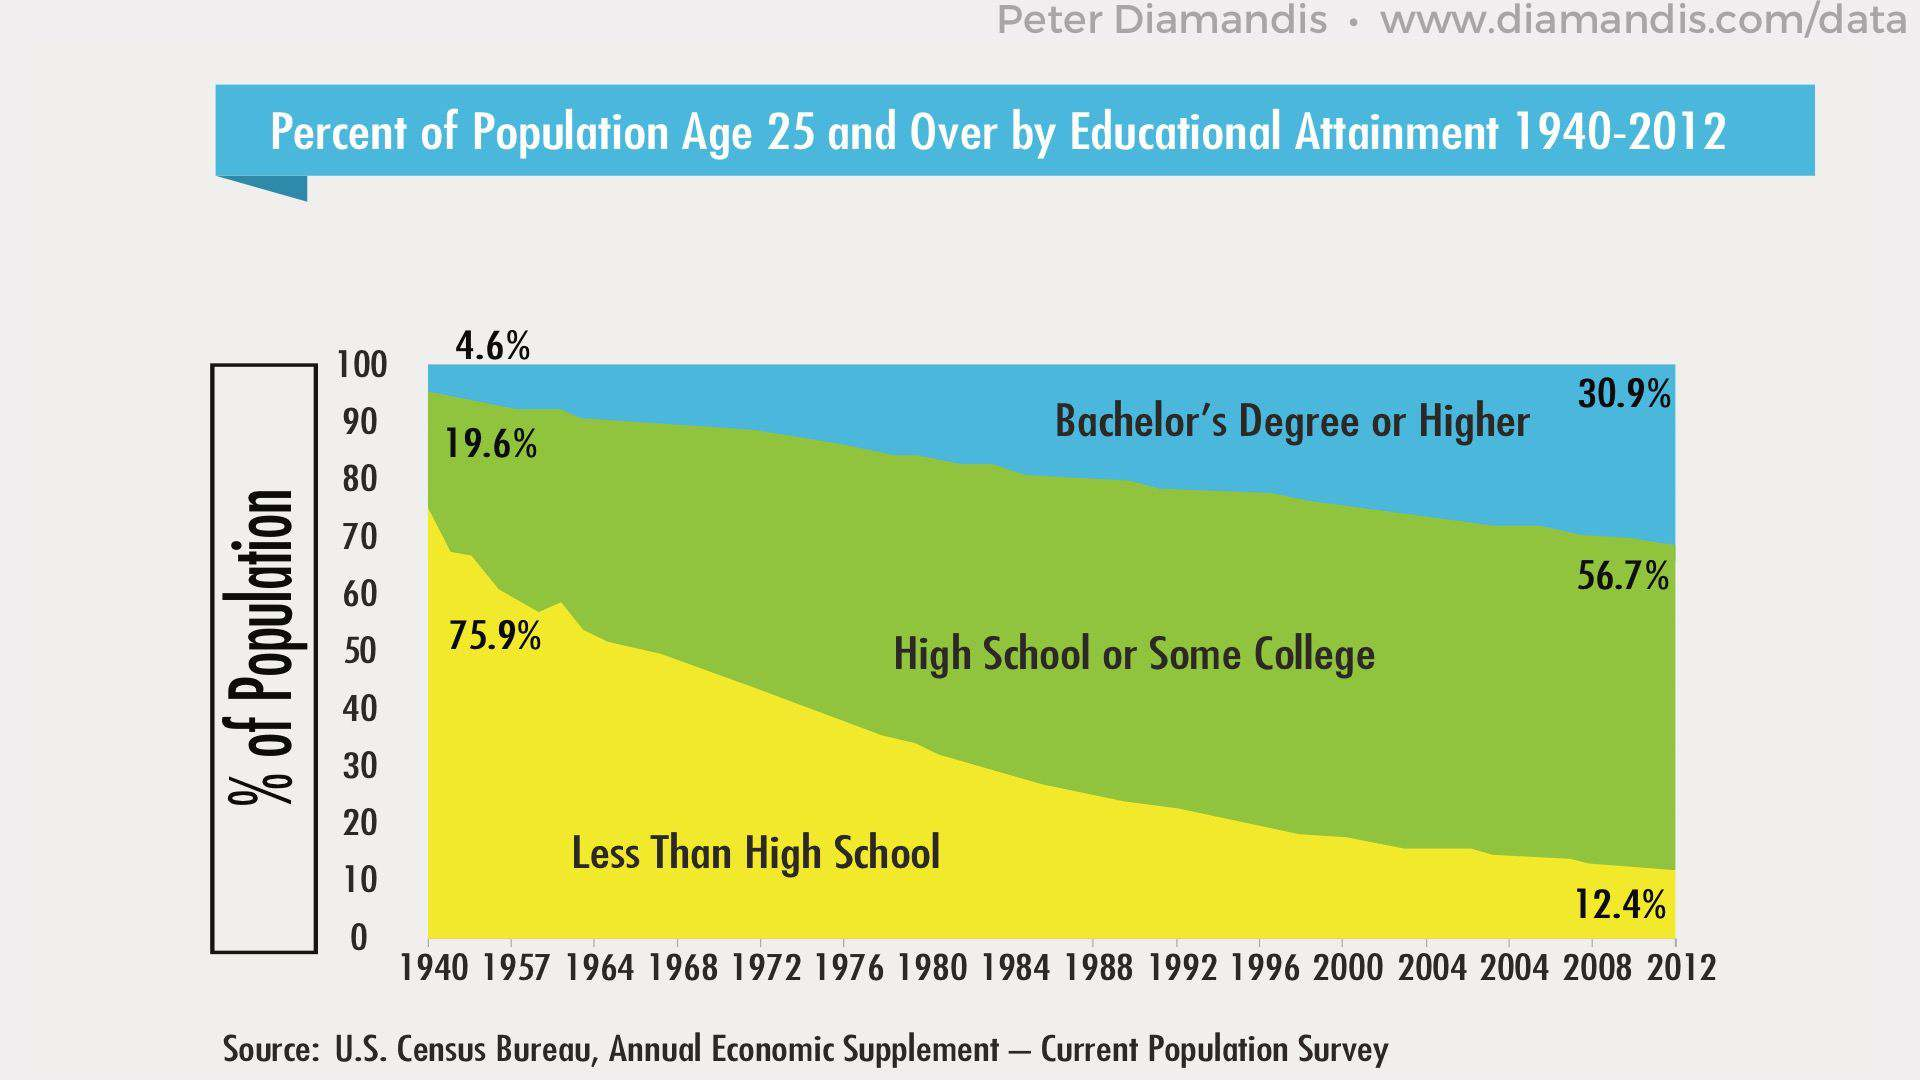 Percent-of-Population-by-Educational-Attainment